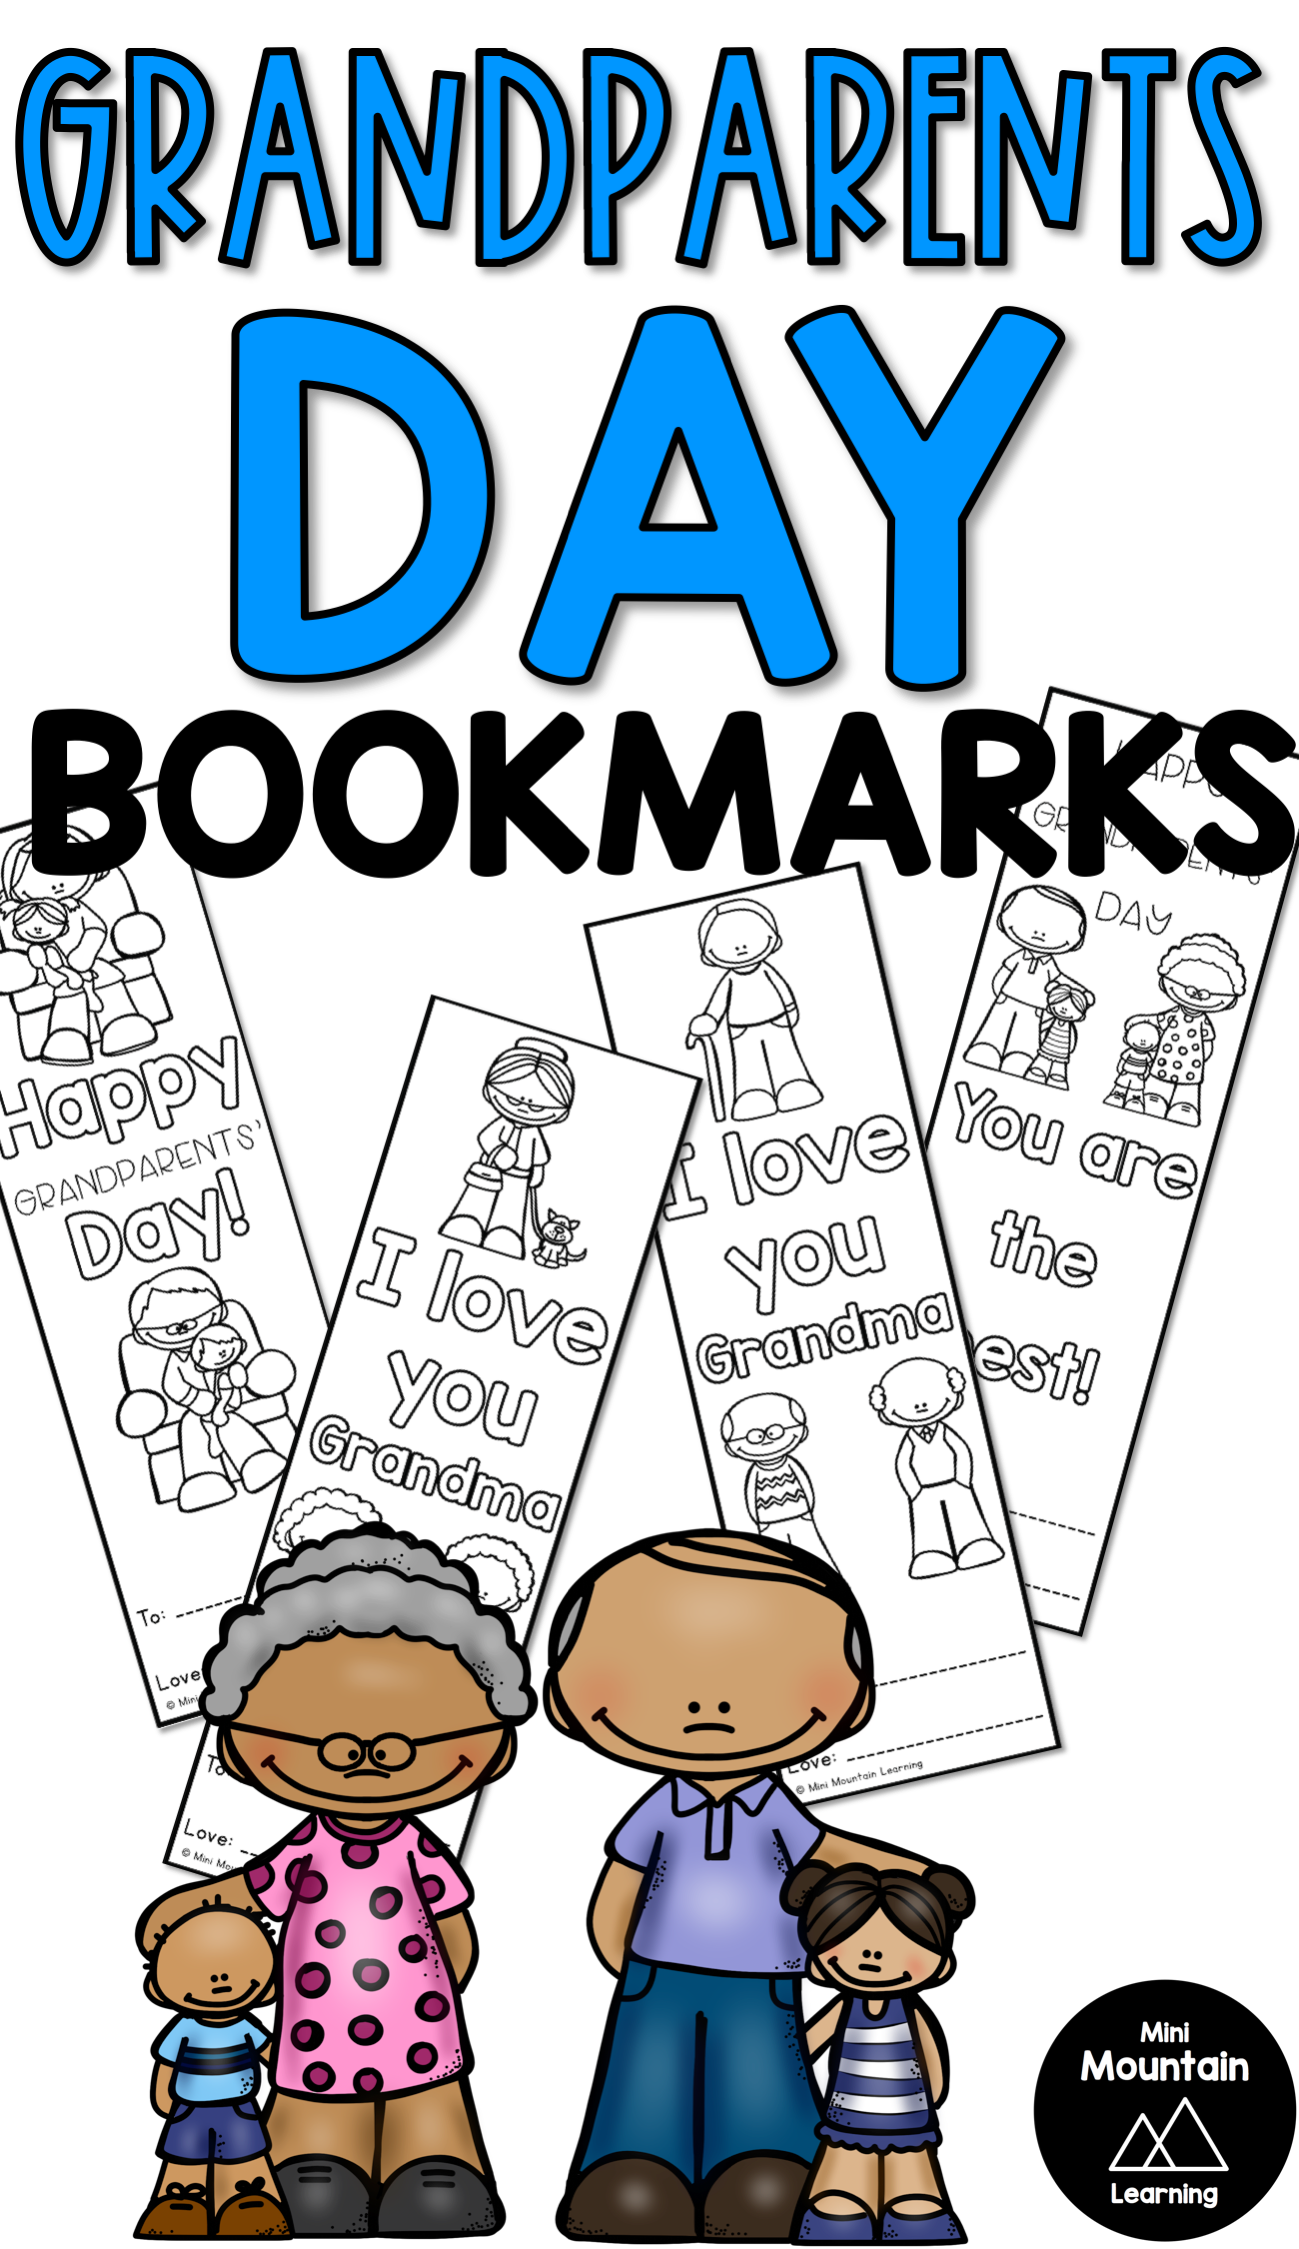 Grandparents Day Bookmarks #grandparentsdaycrafts